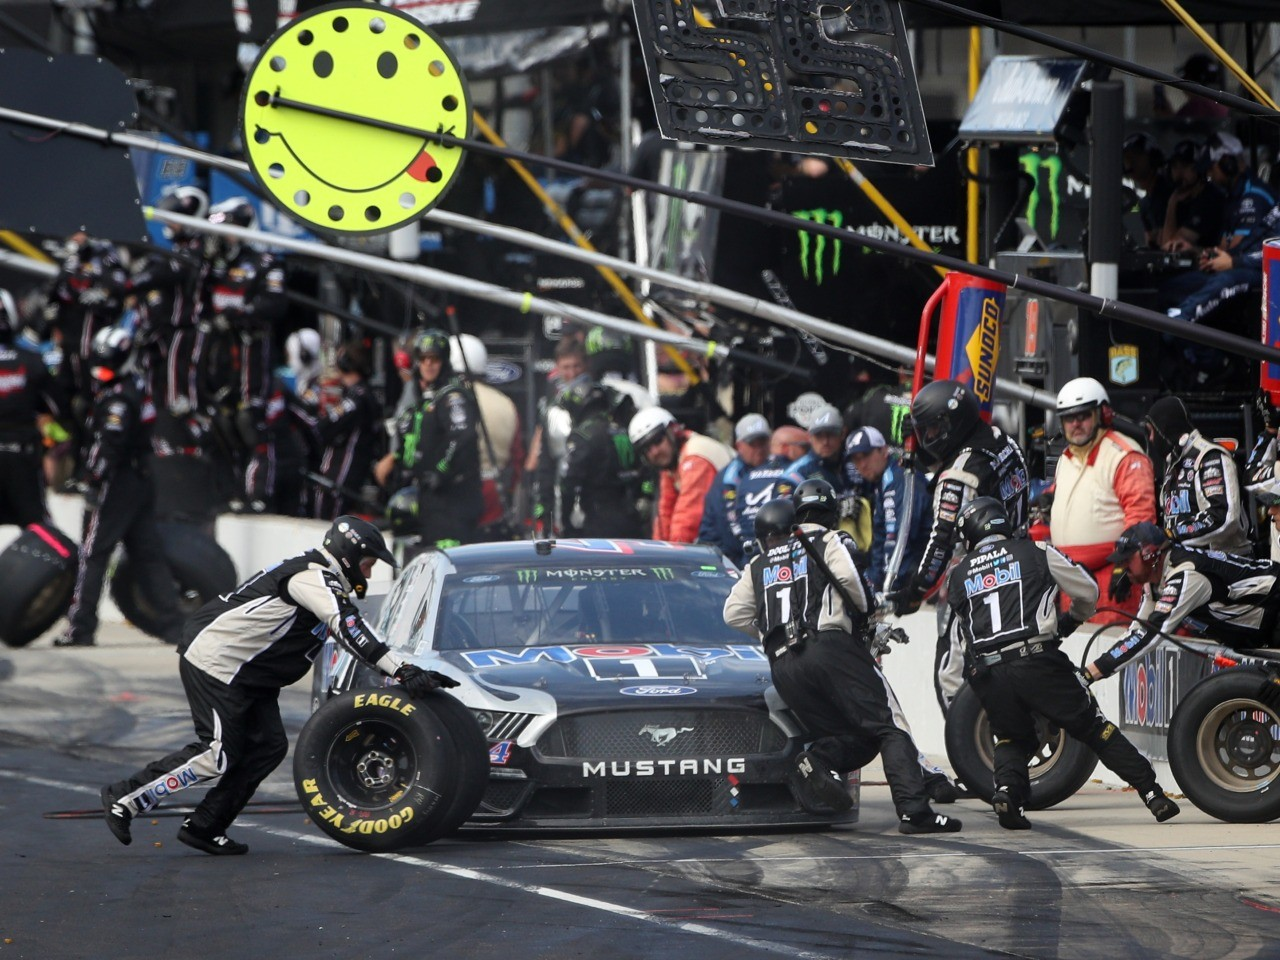 NASCAR Shifts on Guns, Rejects Ad Showing Semiautomatic Rifle